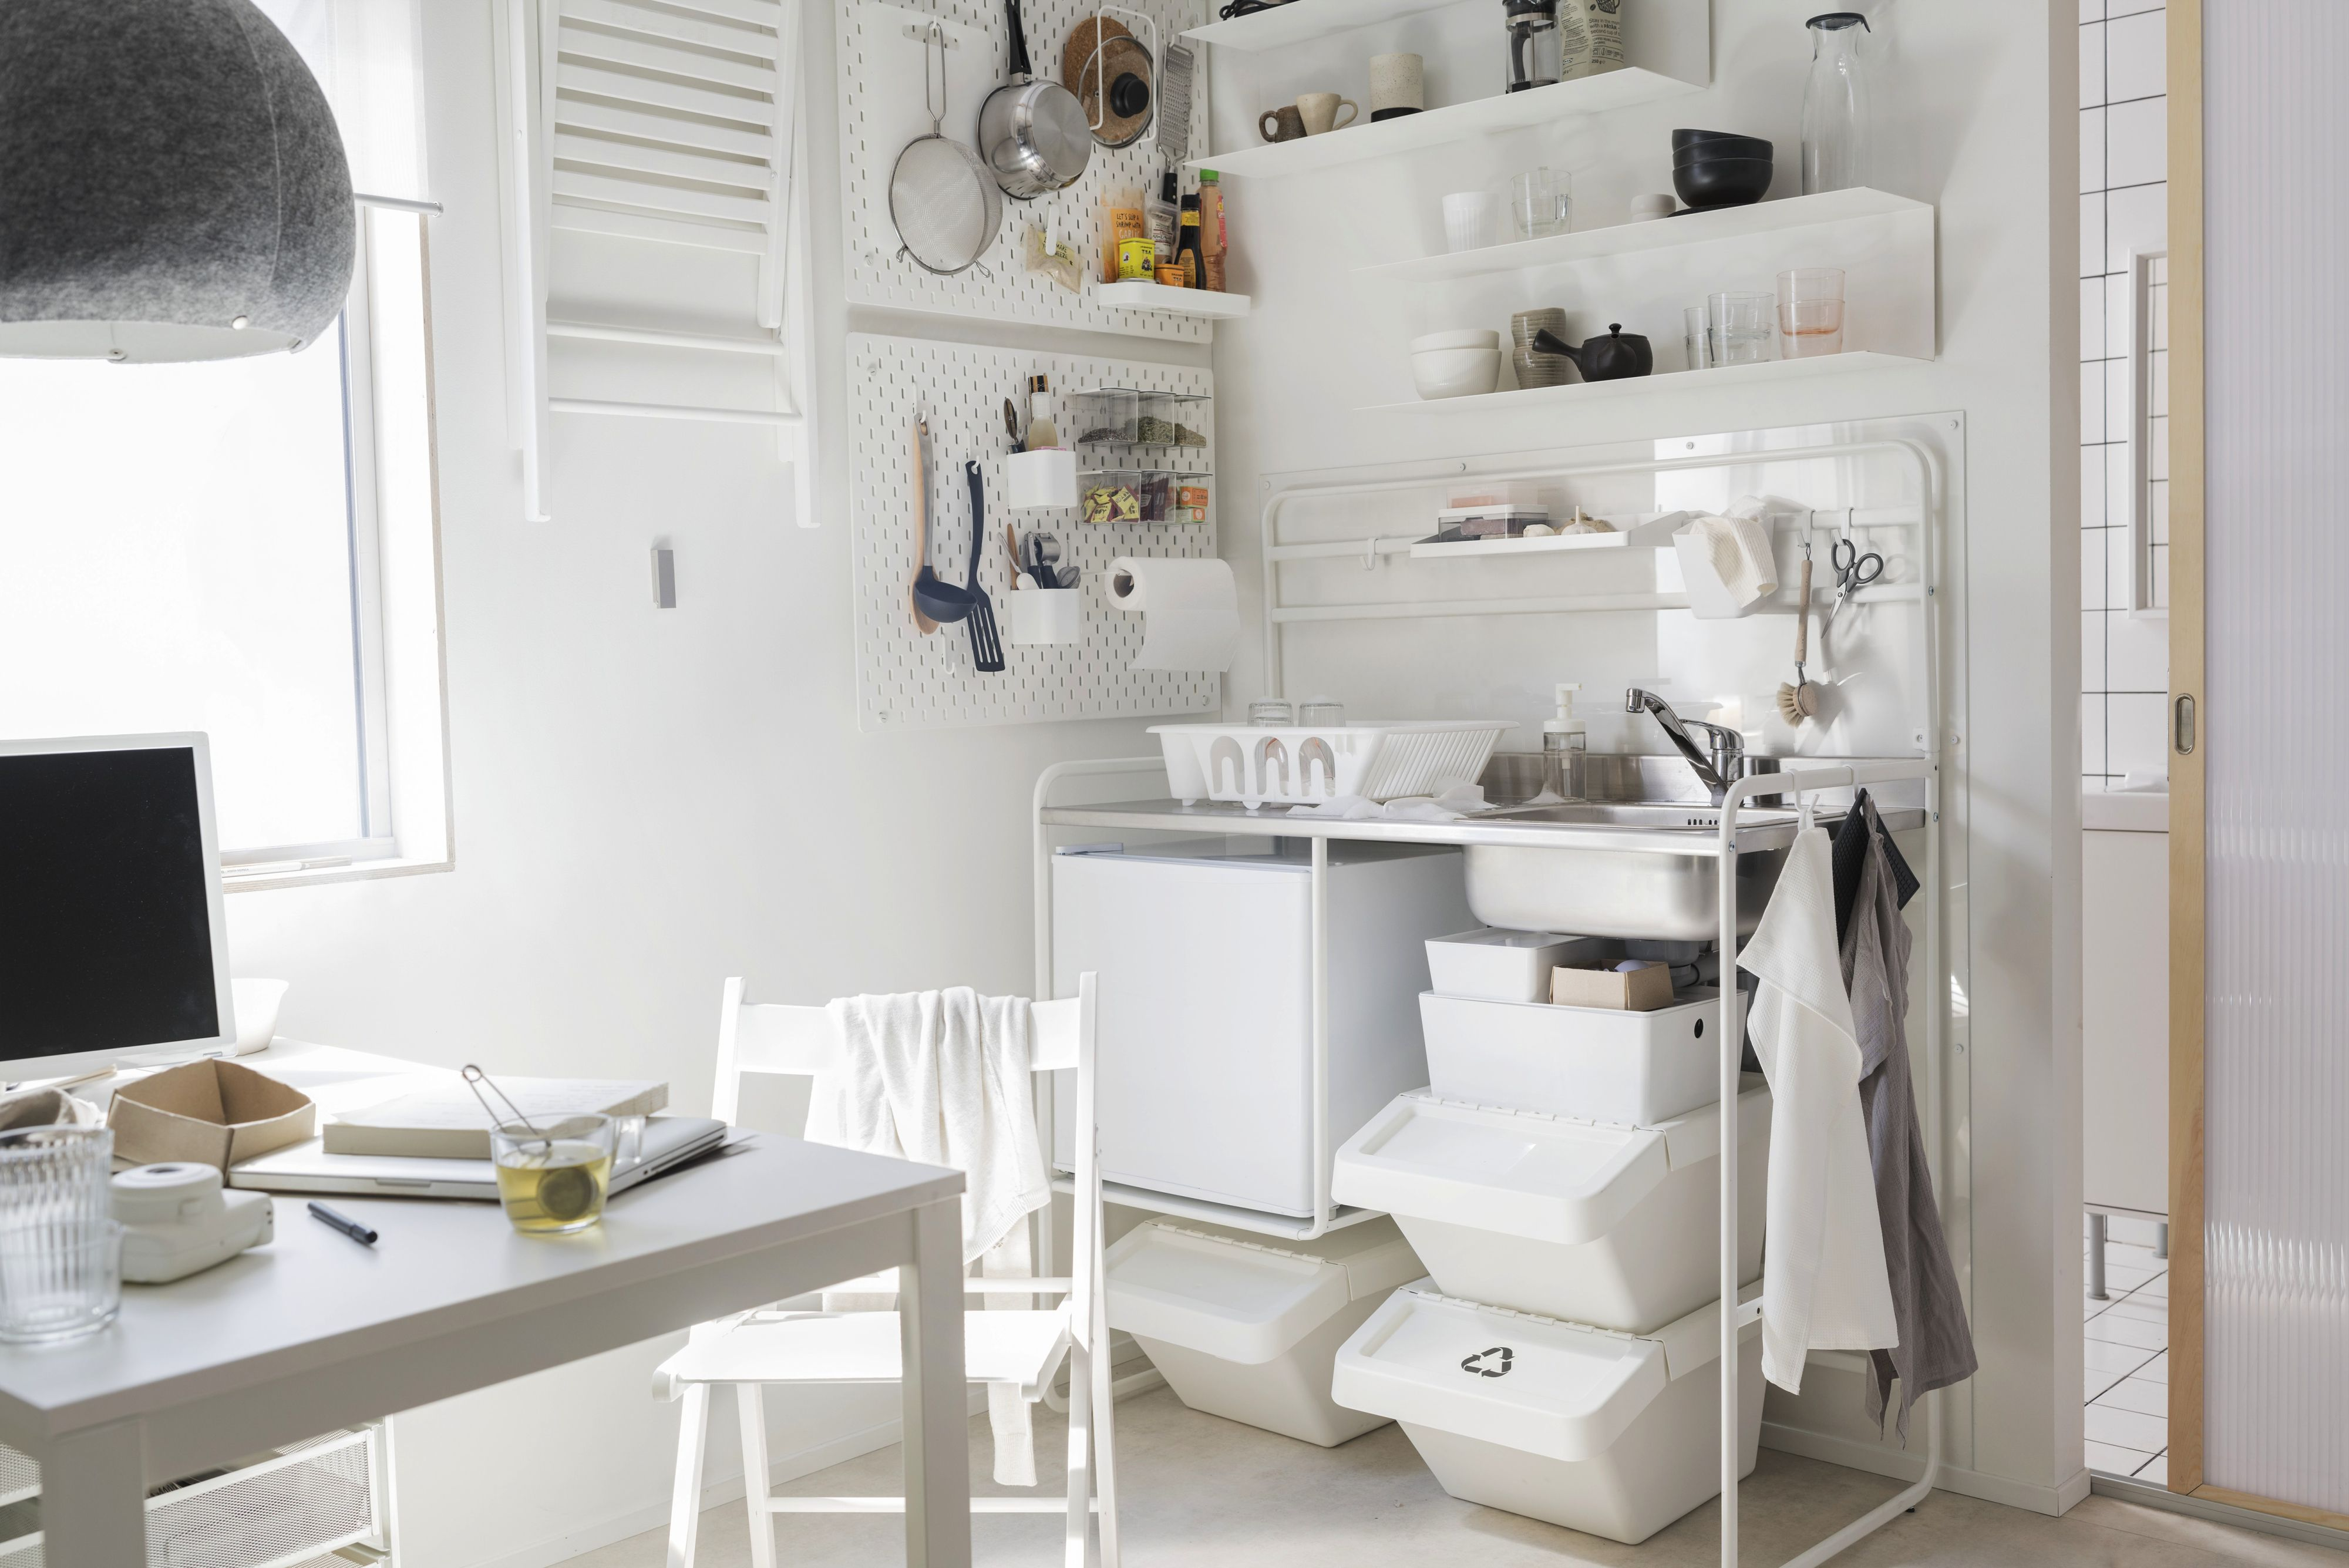 Ikea Küche 199 Euro Your Kitchen Your Rules The Sunnersta Mini Kitchen Is An Easy To